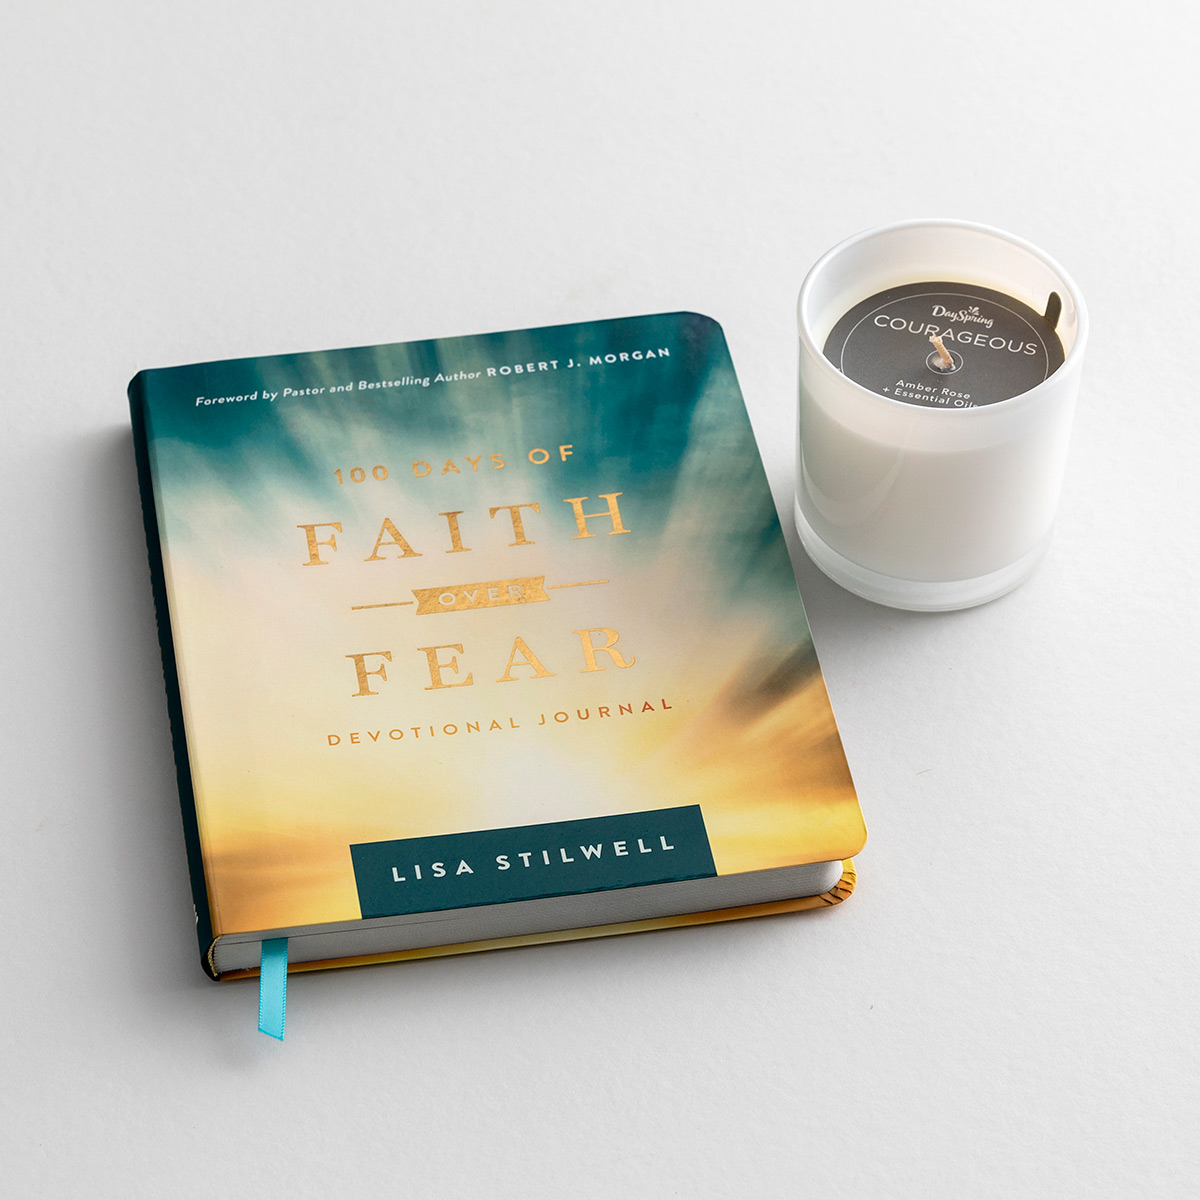 100 Days of Faith Over Fear & Courageous Candle - Quiet Time Gift Set